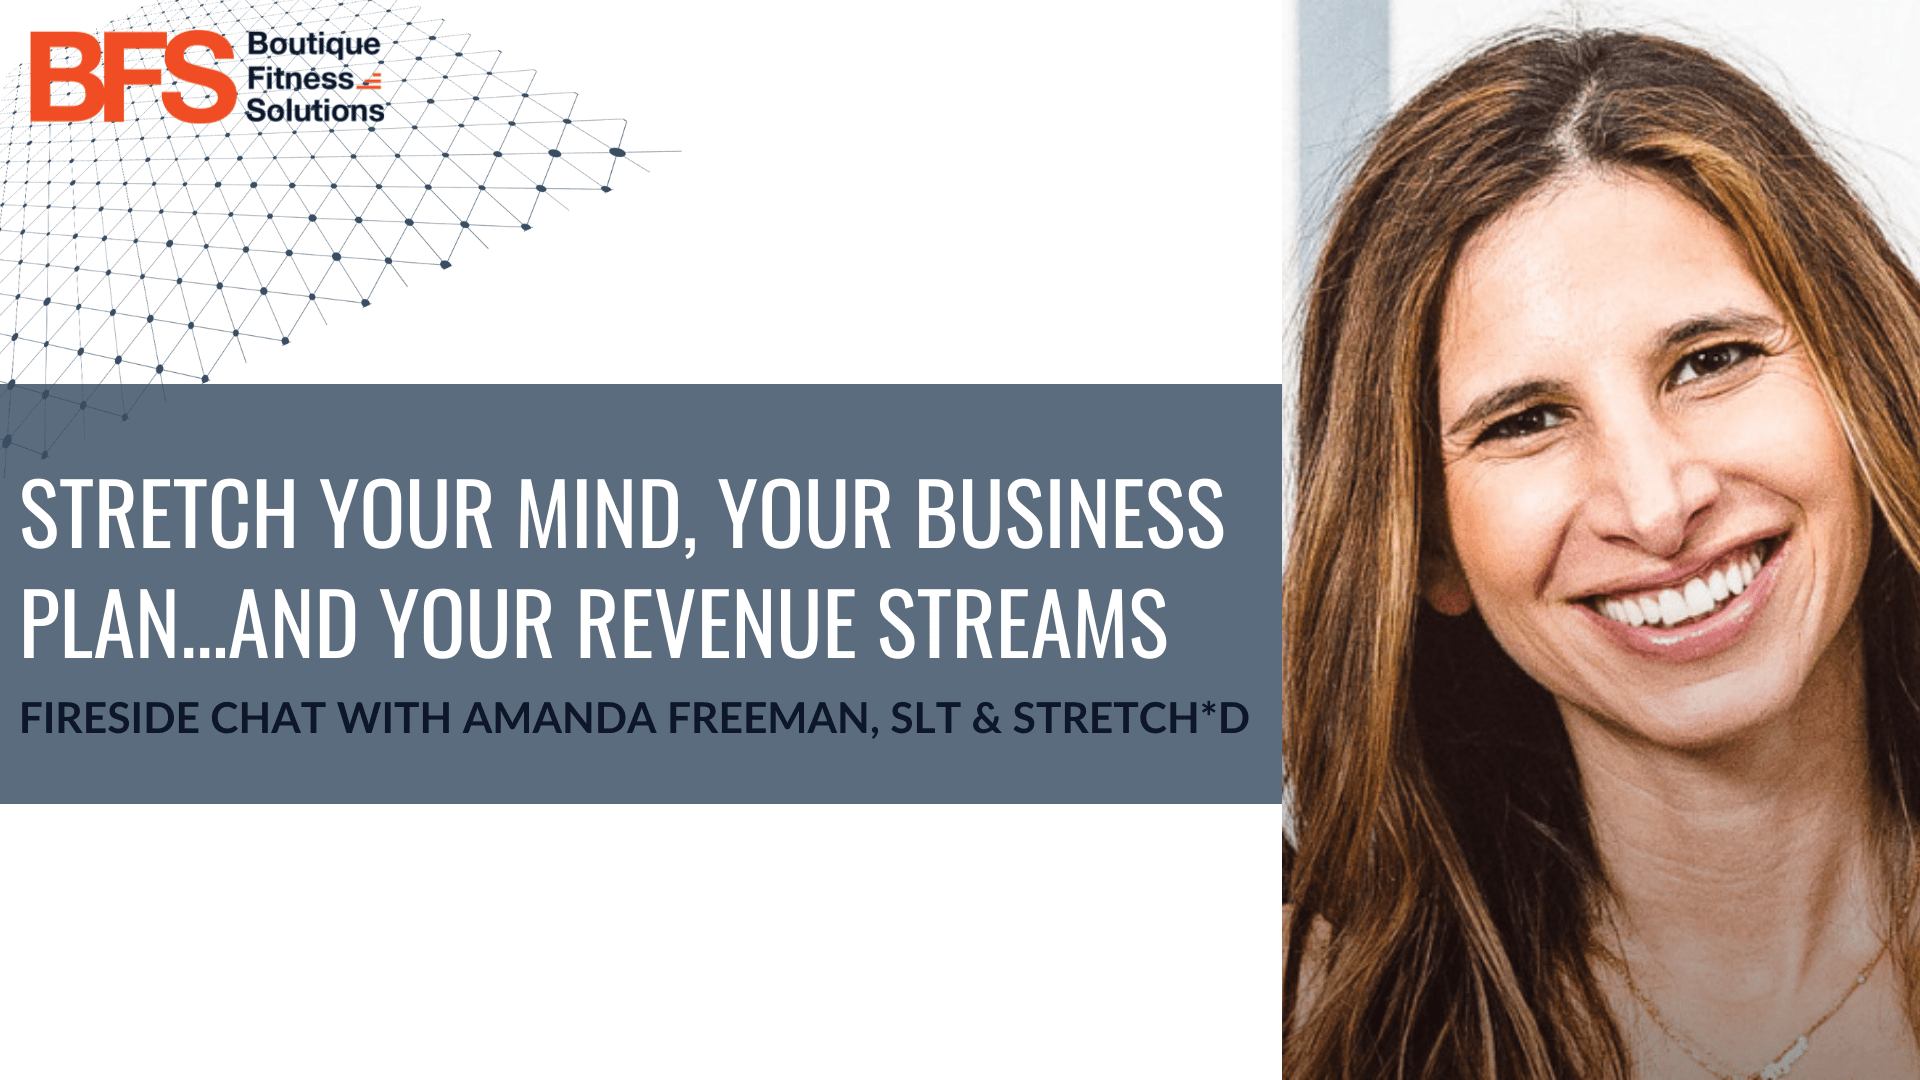 Stretch Your Mind, Your Business Plan…AND Your Revenue Streams